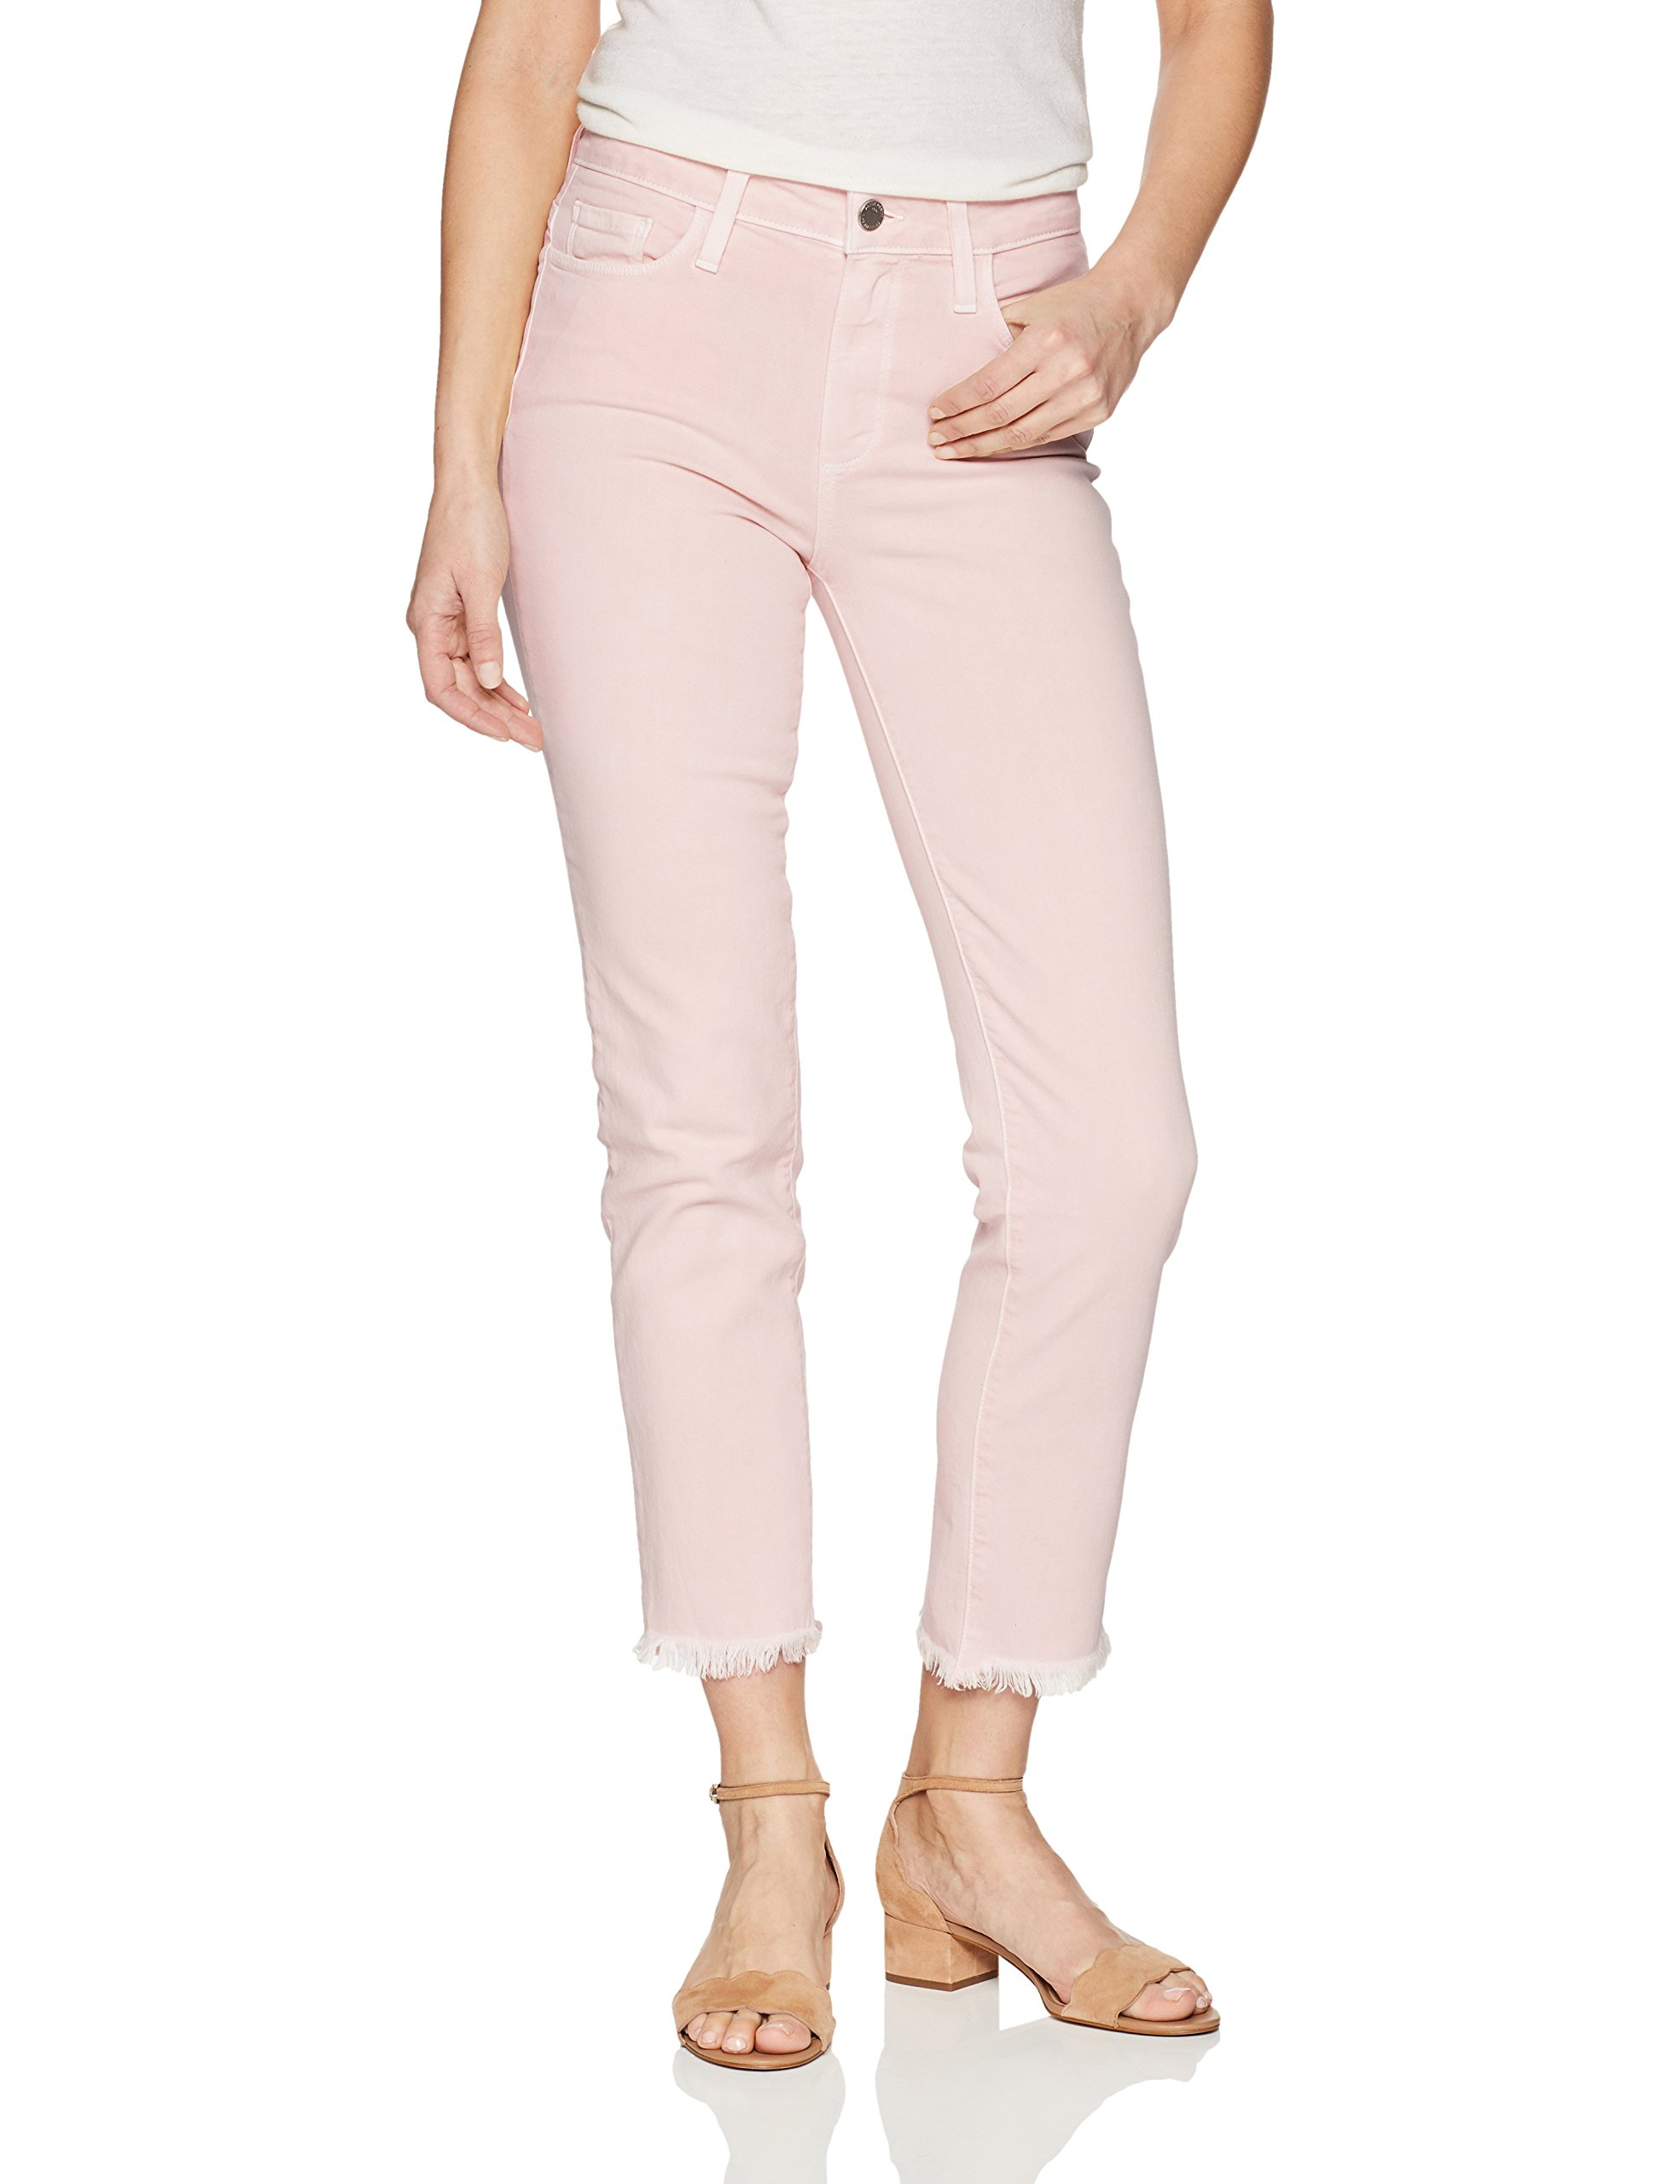 PAIGE Women's Hoxton Ankle Jeans, Faded Cotton Candy, 29